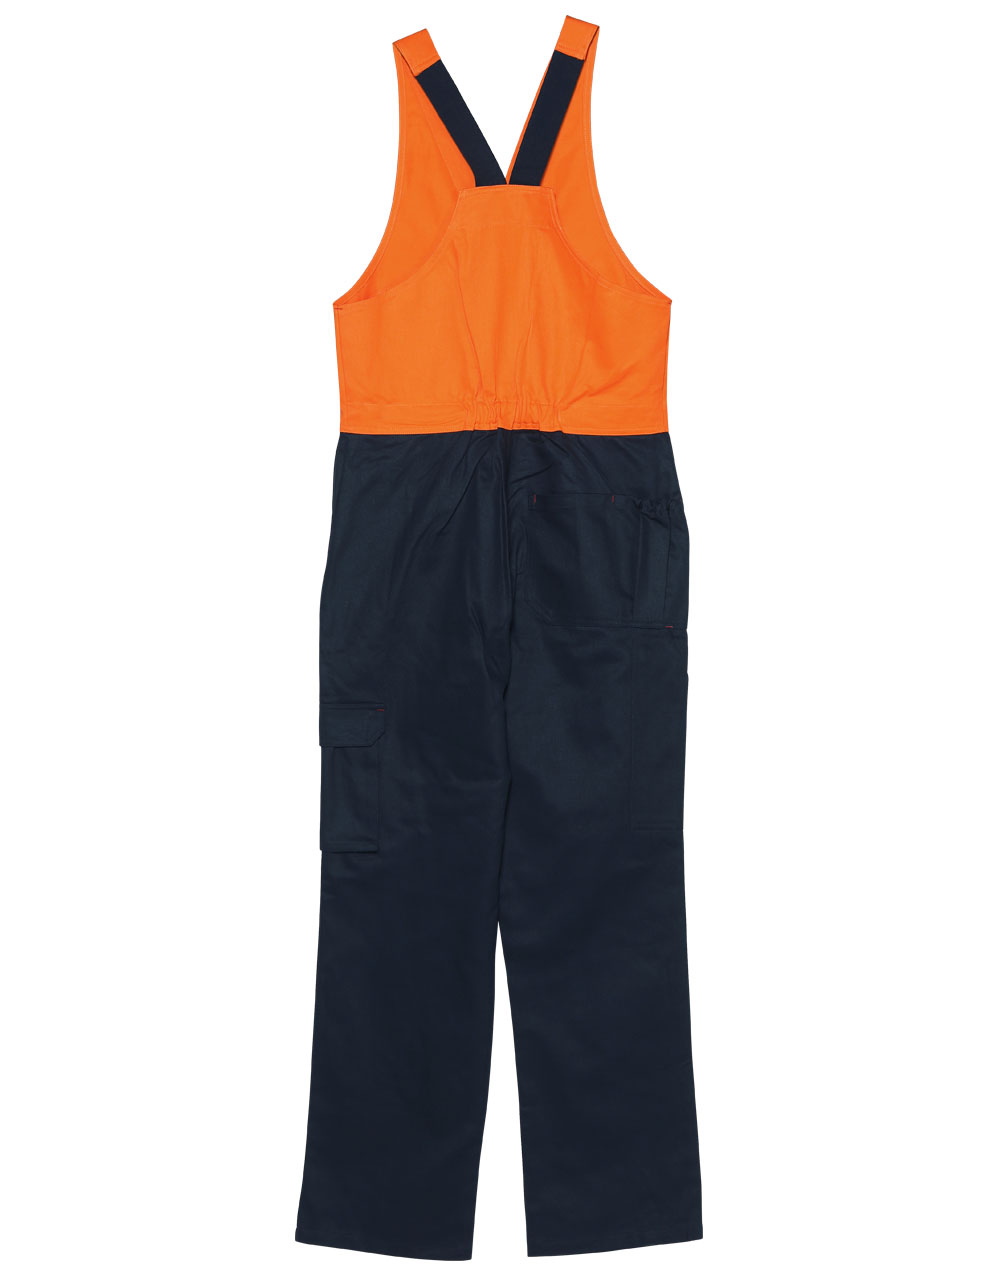 https://s3-ap-southeast-1.amazonaws.com/ws-imgs/WORKWEAR/SW202_Orange.Navy_Back.jpg